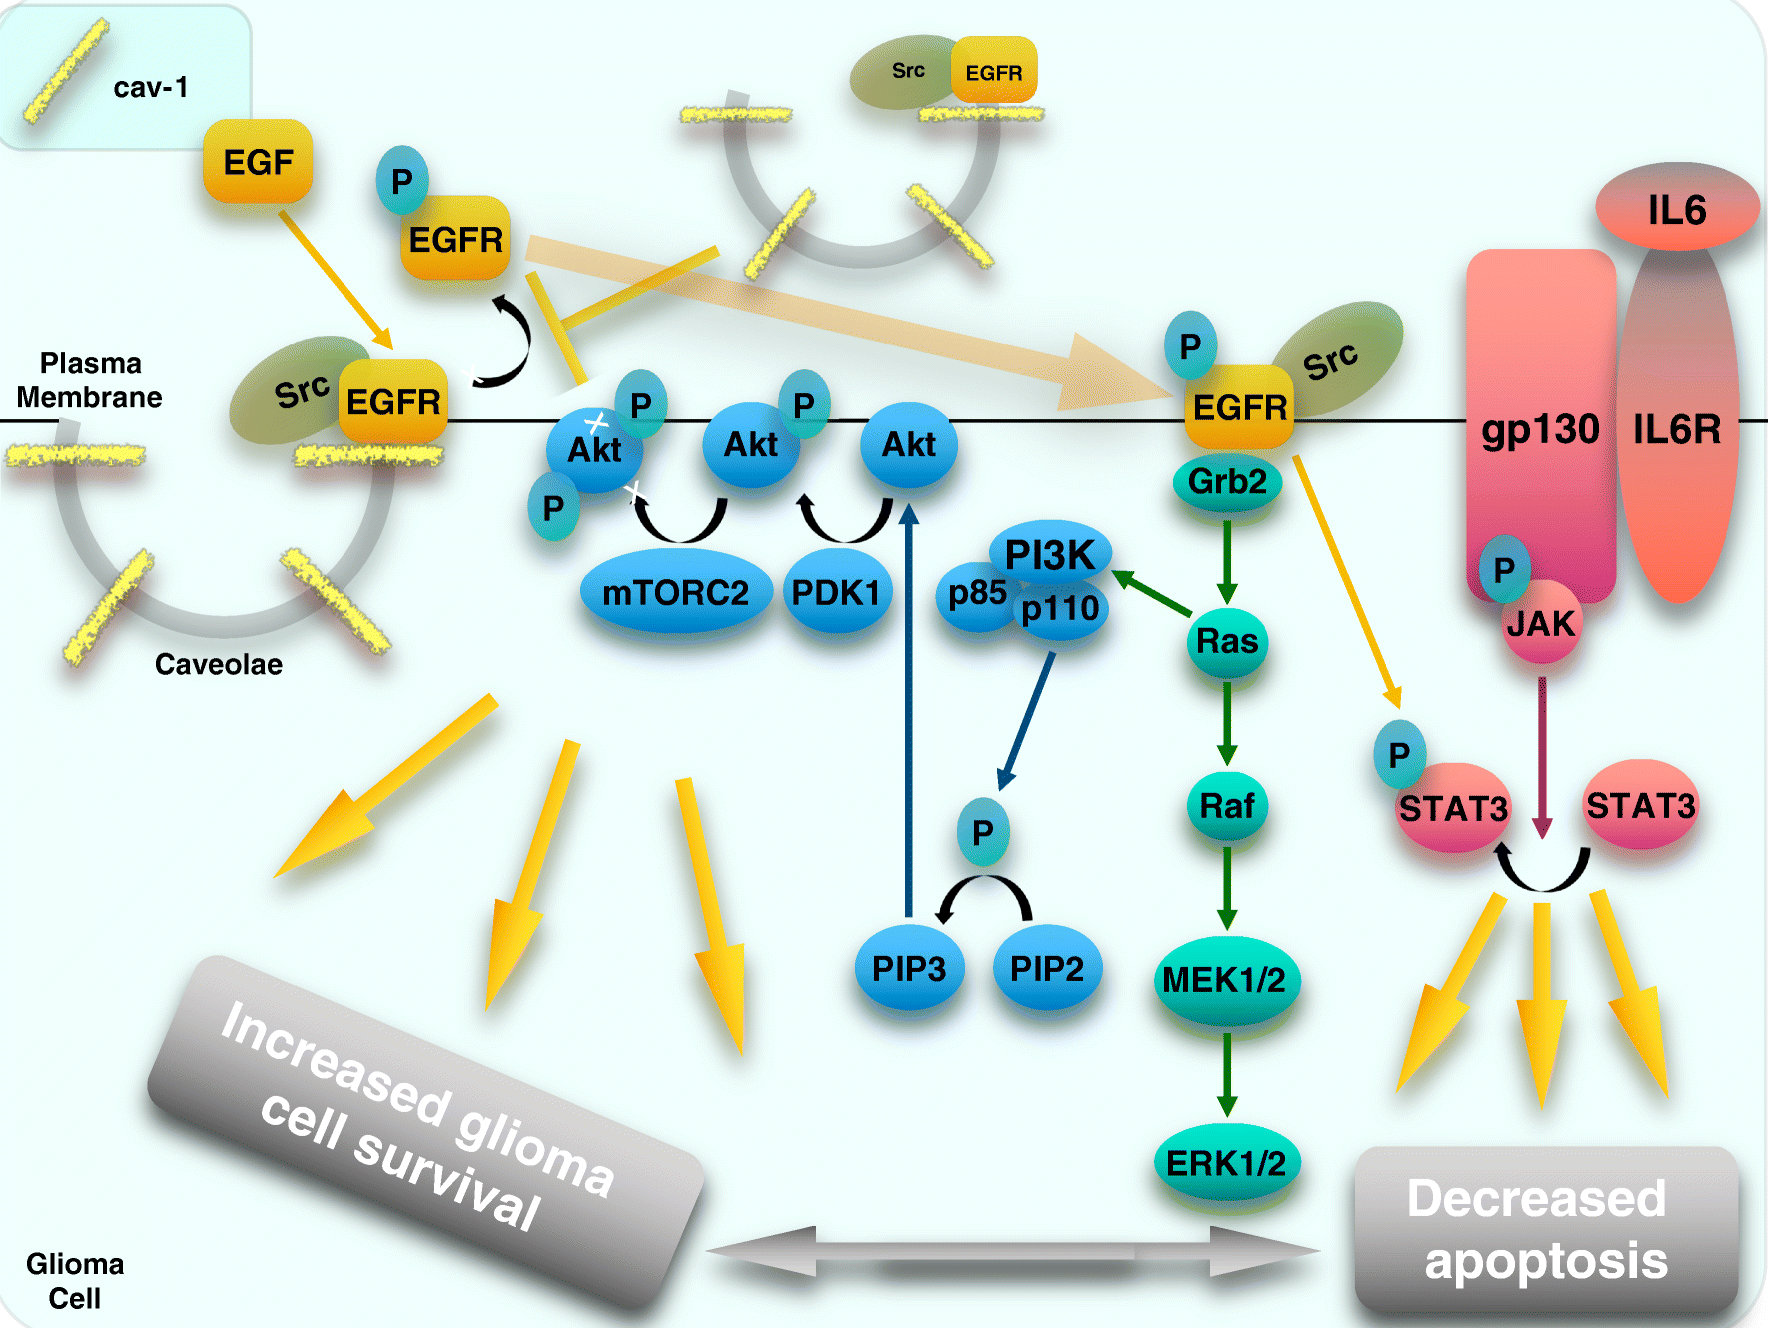 The role of caveolin-1 in tumors of the brain - functional and